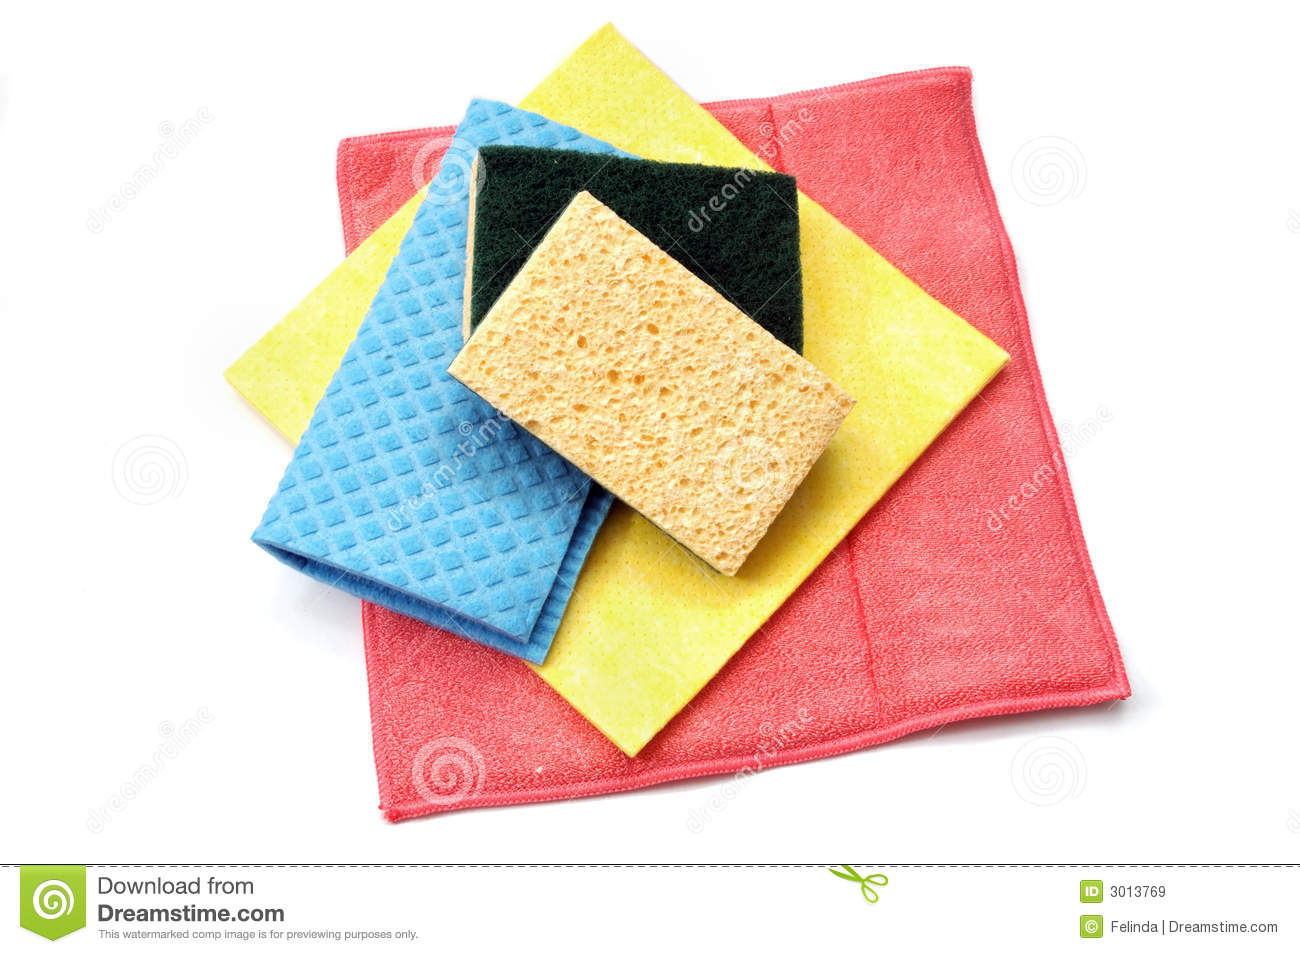 Cleaning Rags And Sponges Royalty Free Stock Images.